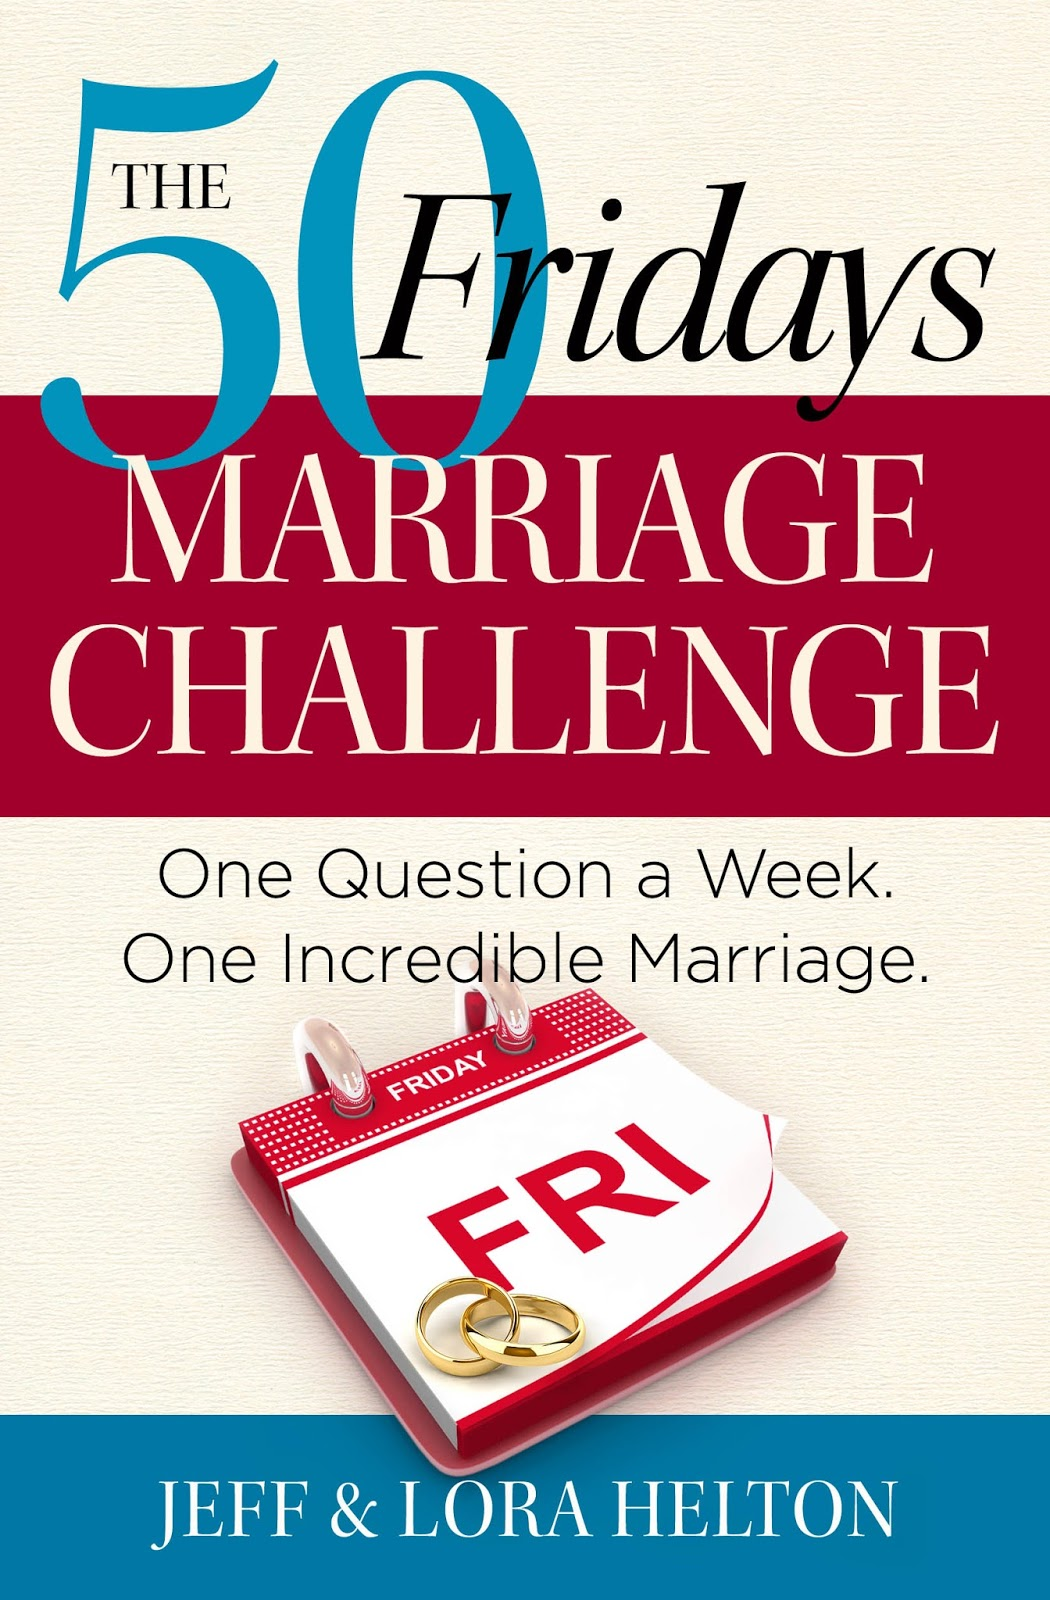 Book Review The 50 Fridays Marriage Challenge By Jeff